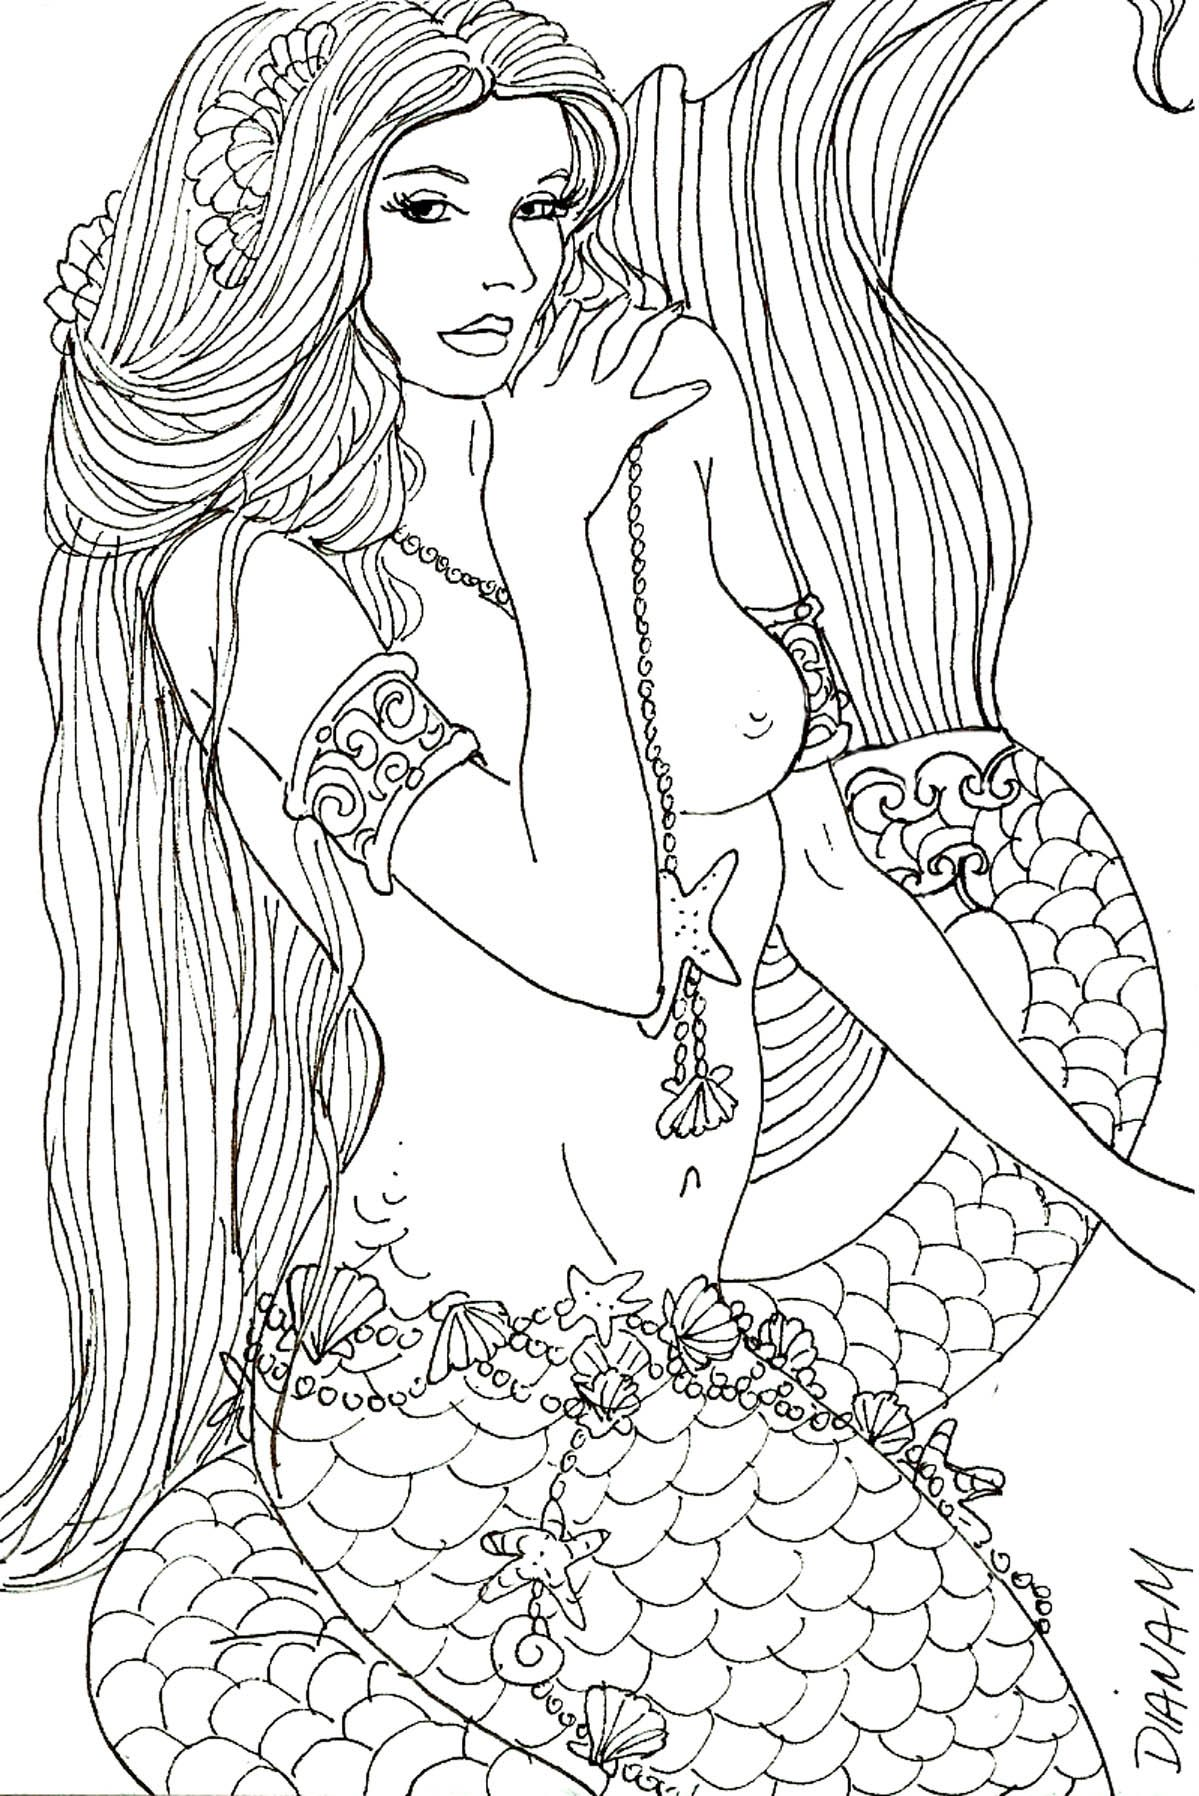 a little shy by artist diane s martin mermaid fantasy myth